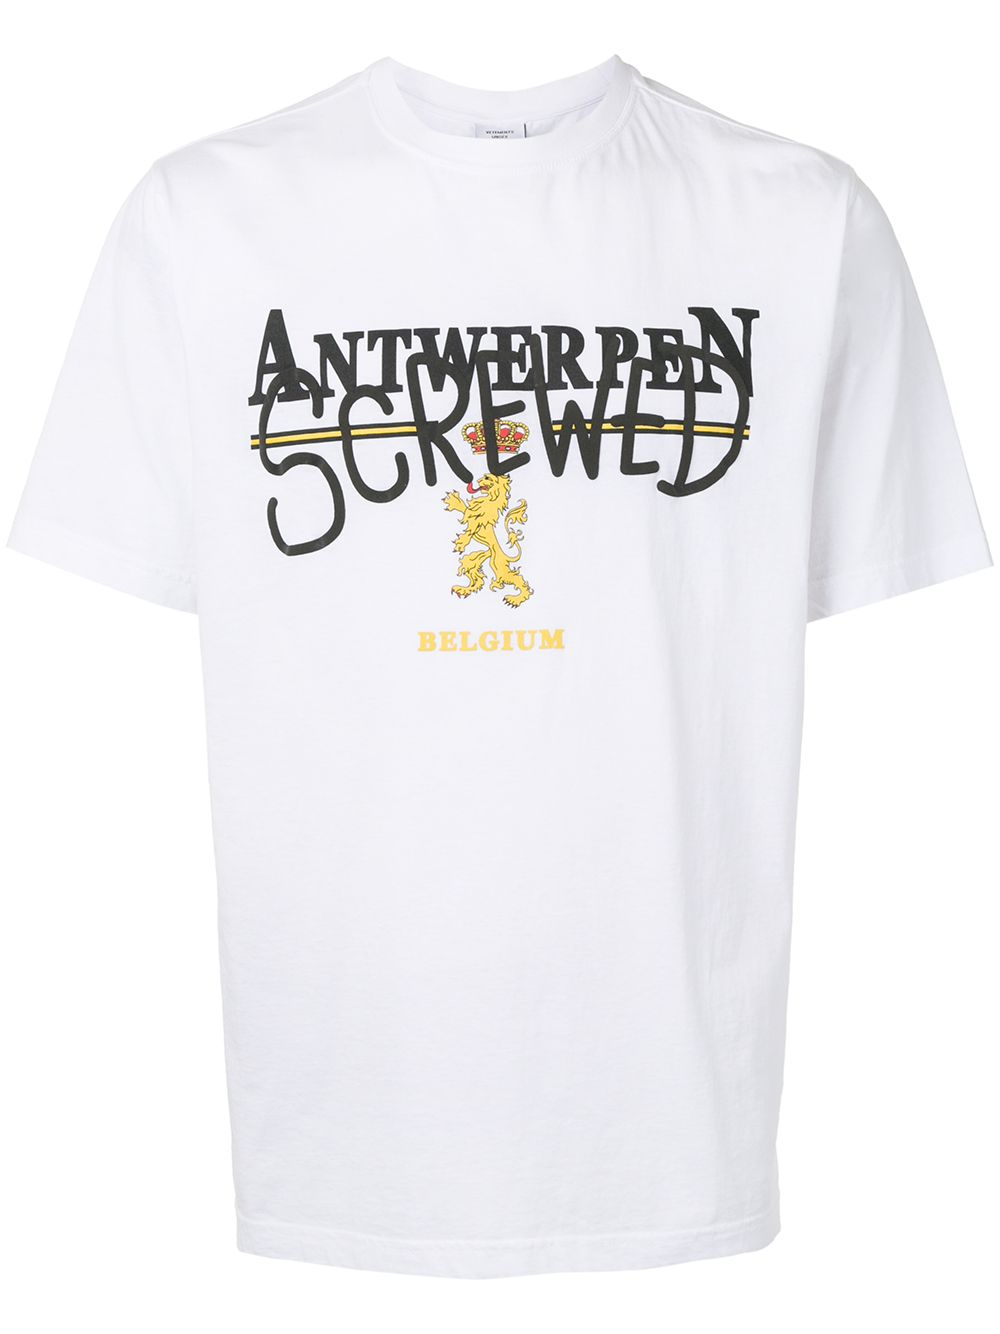 Vetements Antwerpen print T-shirt white - Maison De Fashion